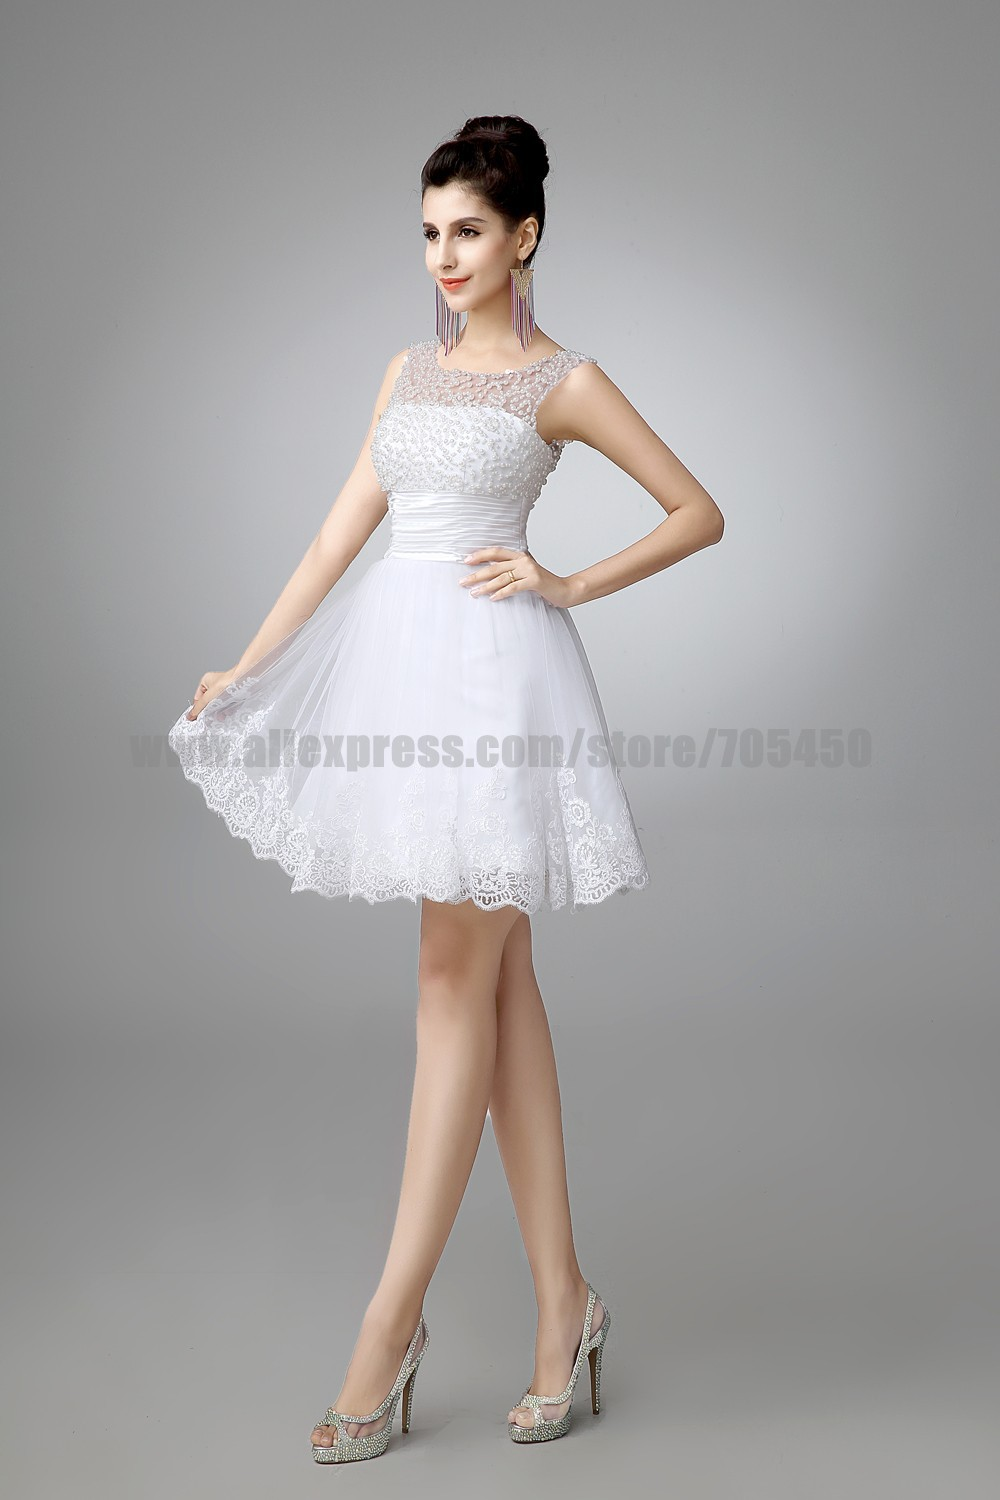 White short wedding dresses all dress for Wedding dresses for tall skinny brides